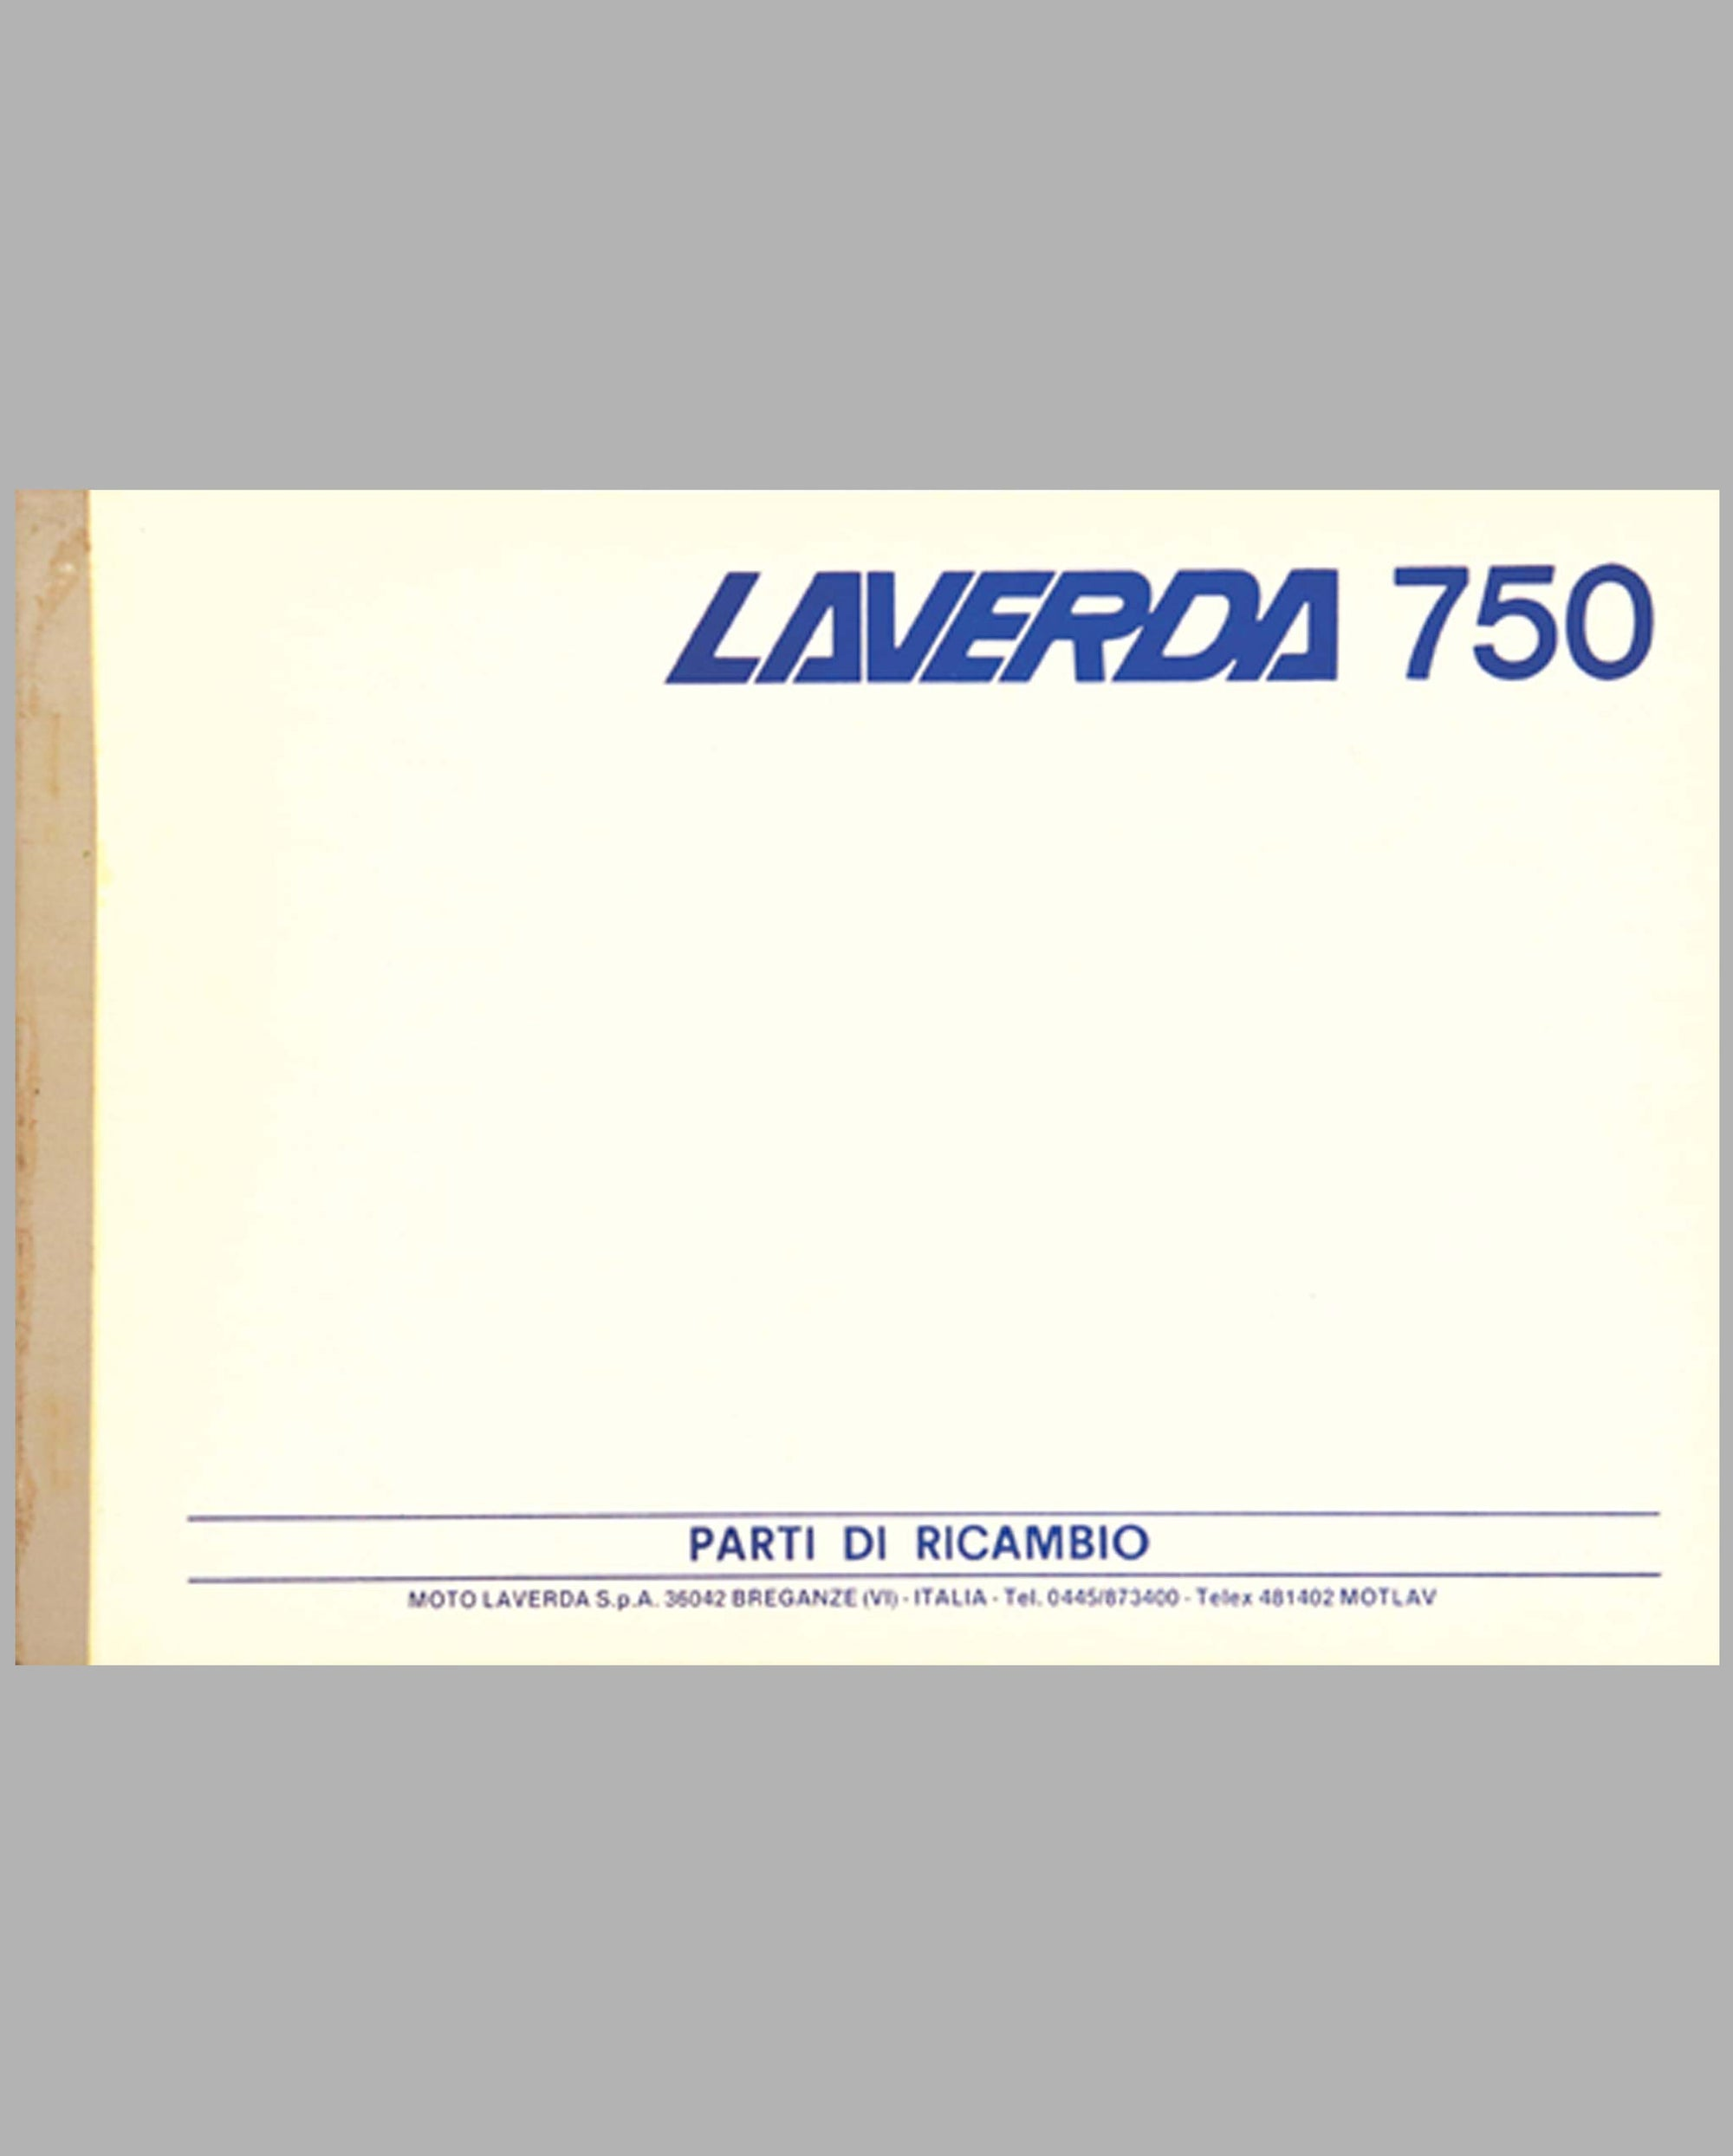 Laverda 750 original factory parts manual, late 1960's